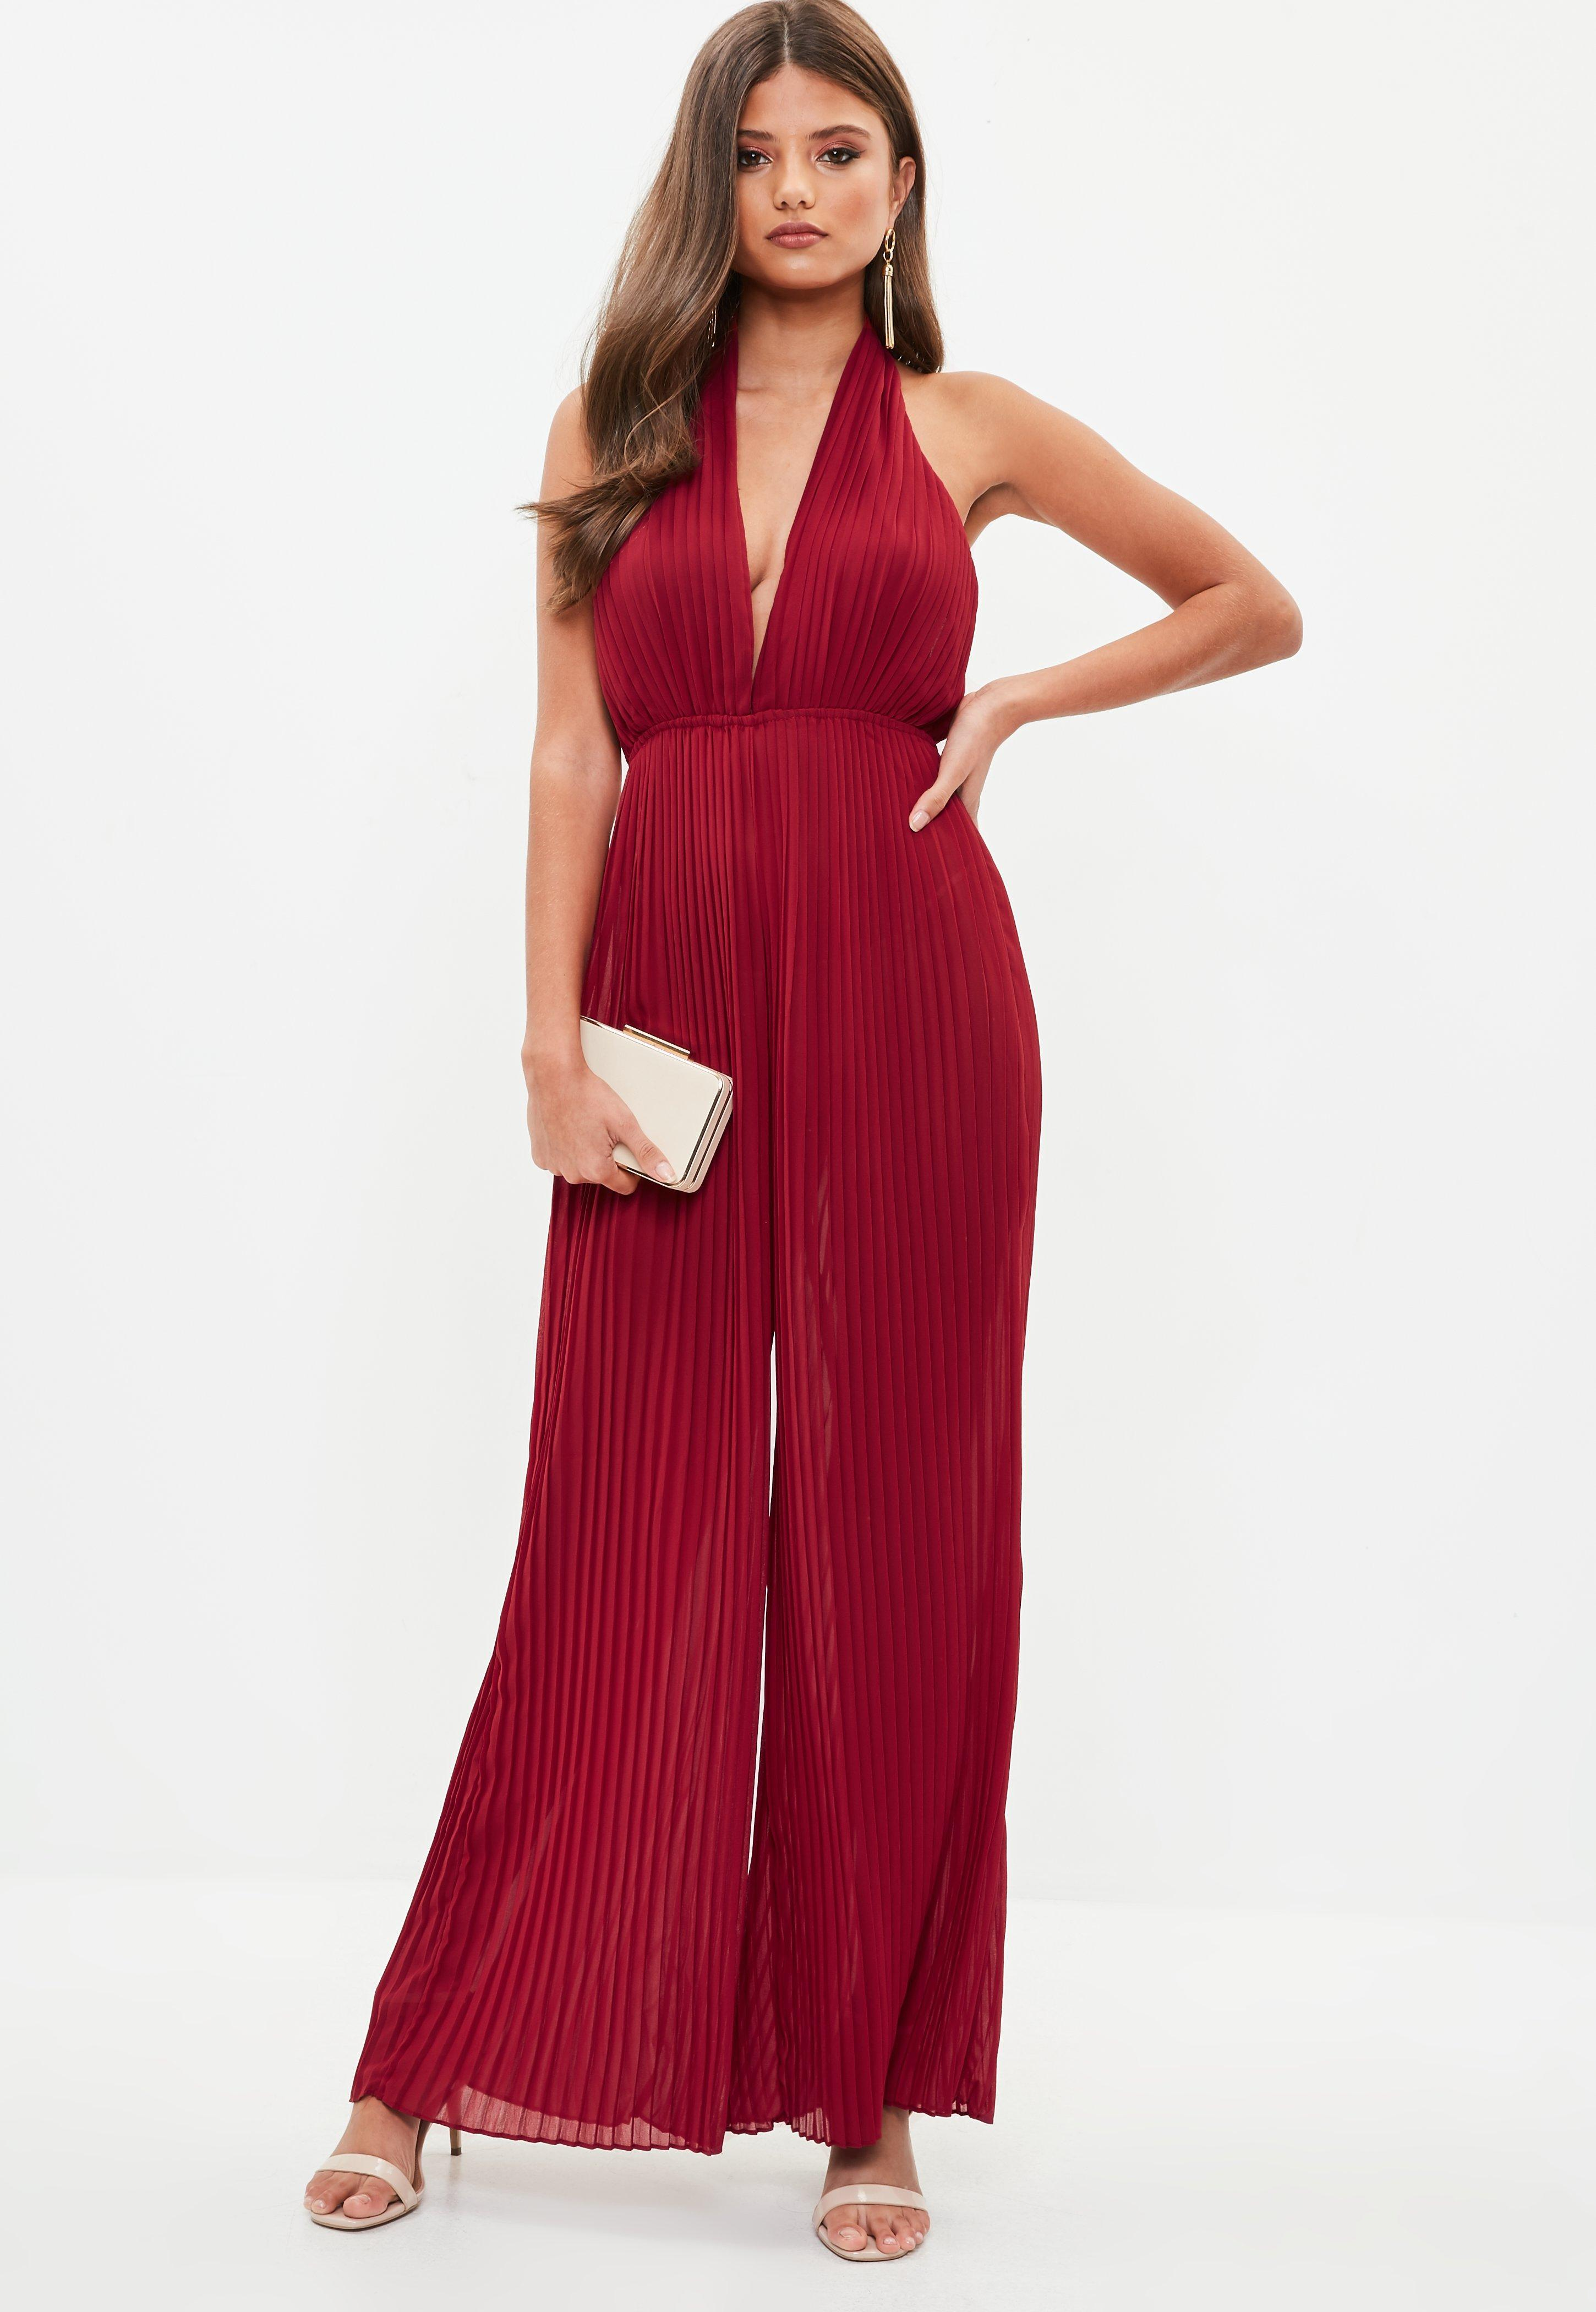 967790003c31 Missguided Red Pleated Halterneck Jumpsuit in Red - Lyst